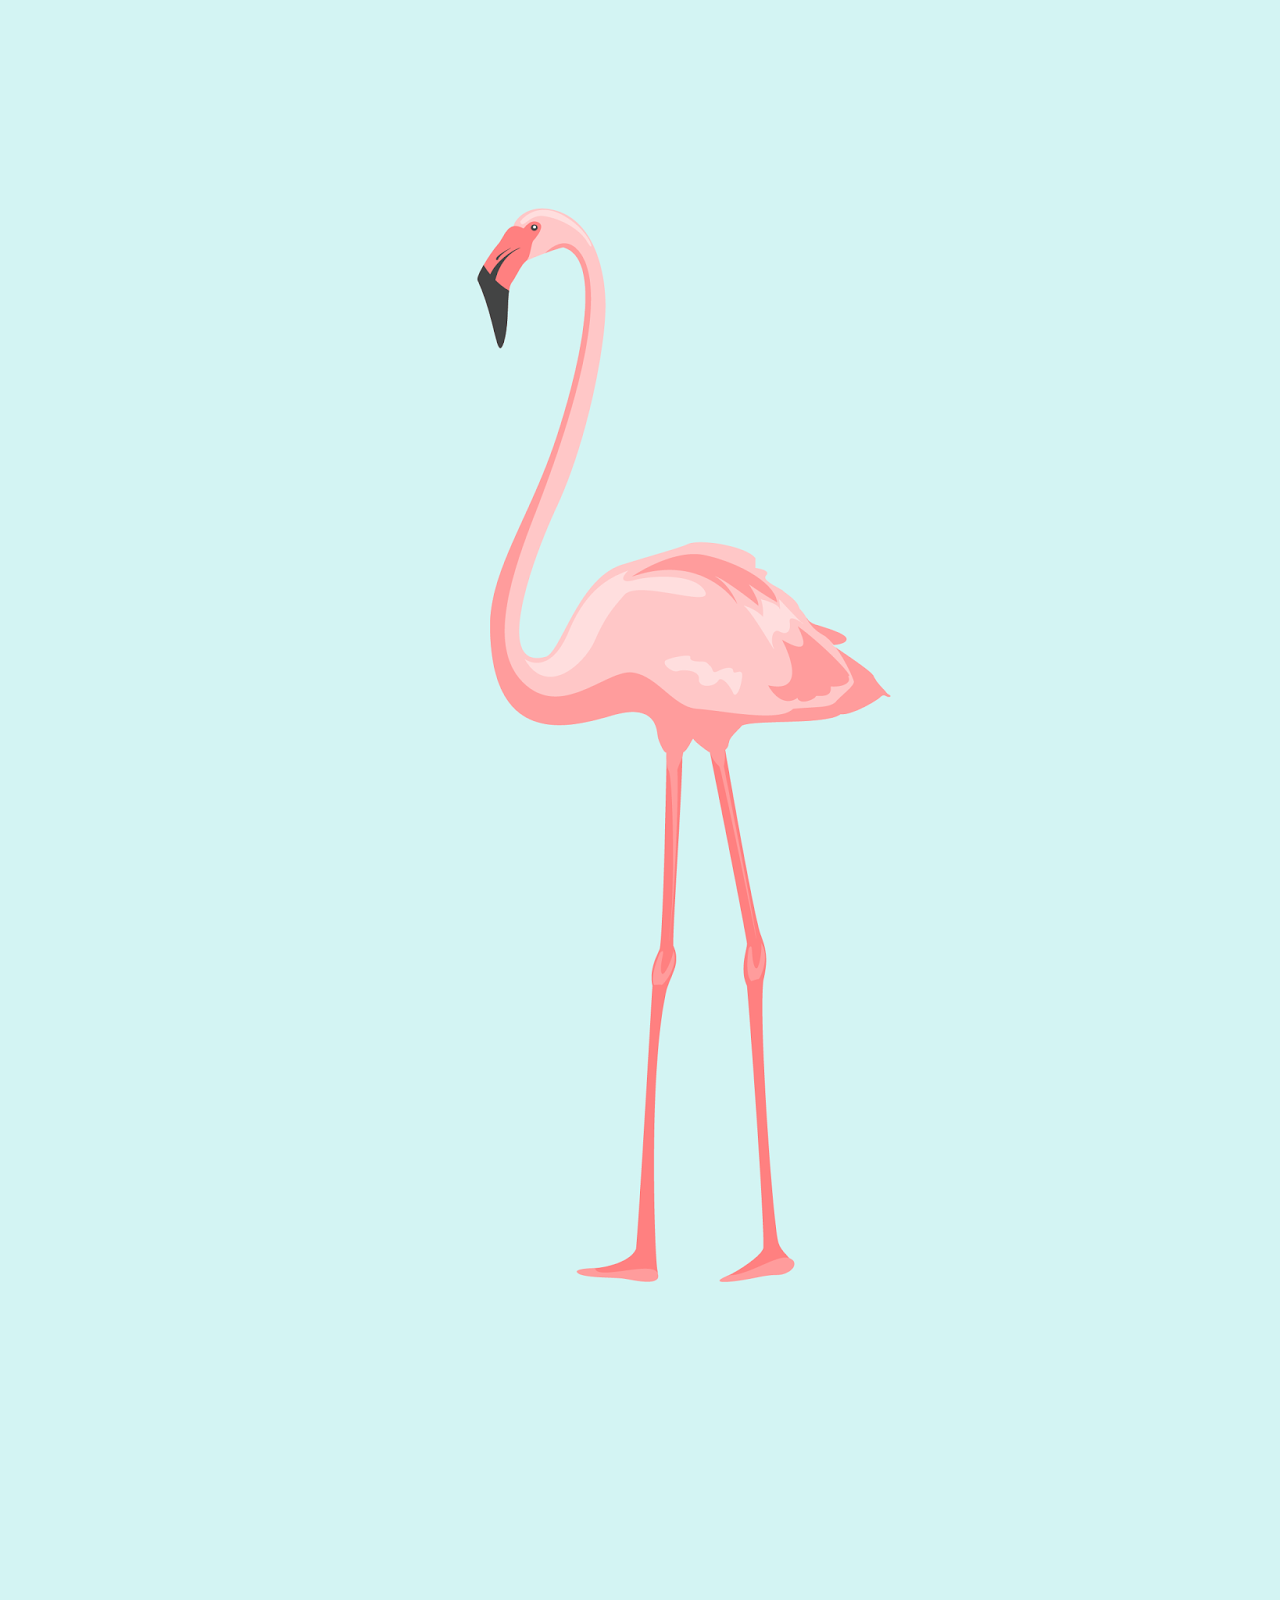 Free Summer Printables - Flamingo Printable via Oh So Lovely | https://www.roseclearfield.com